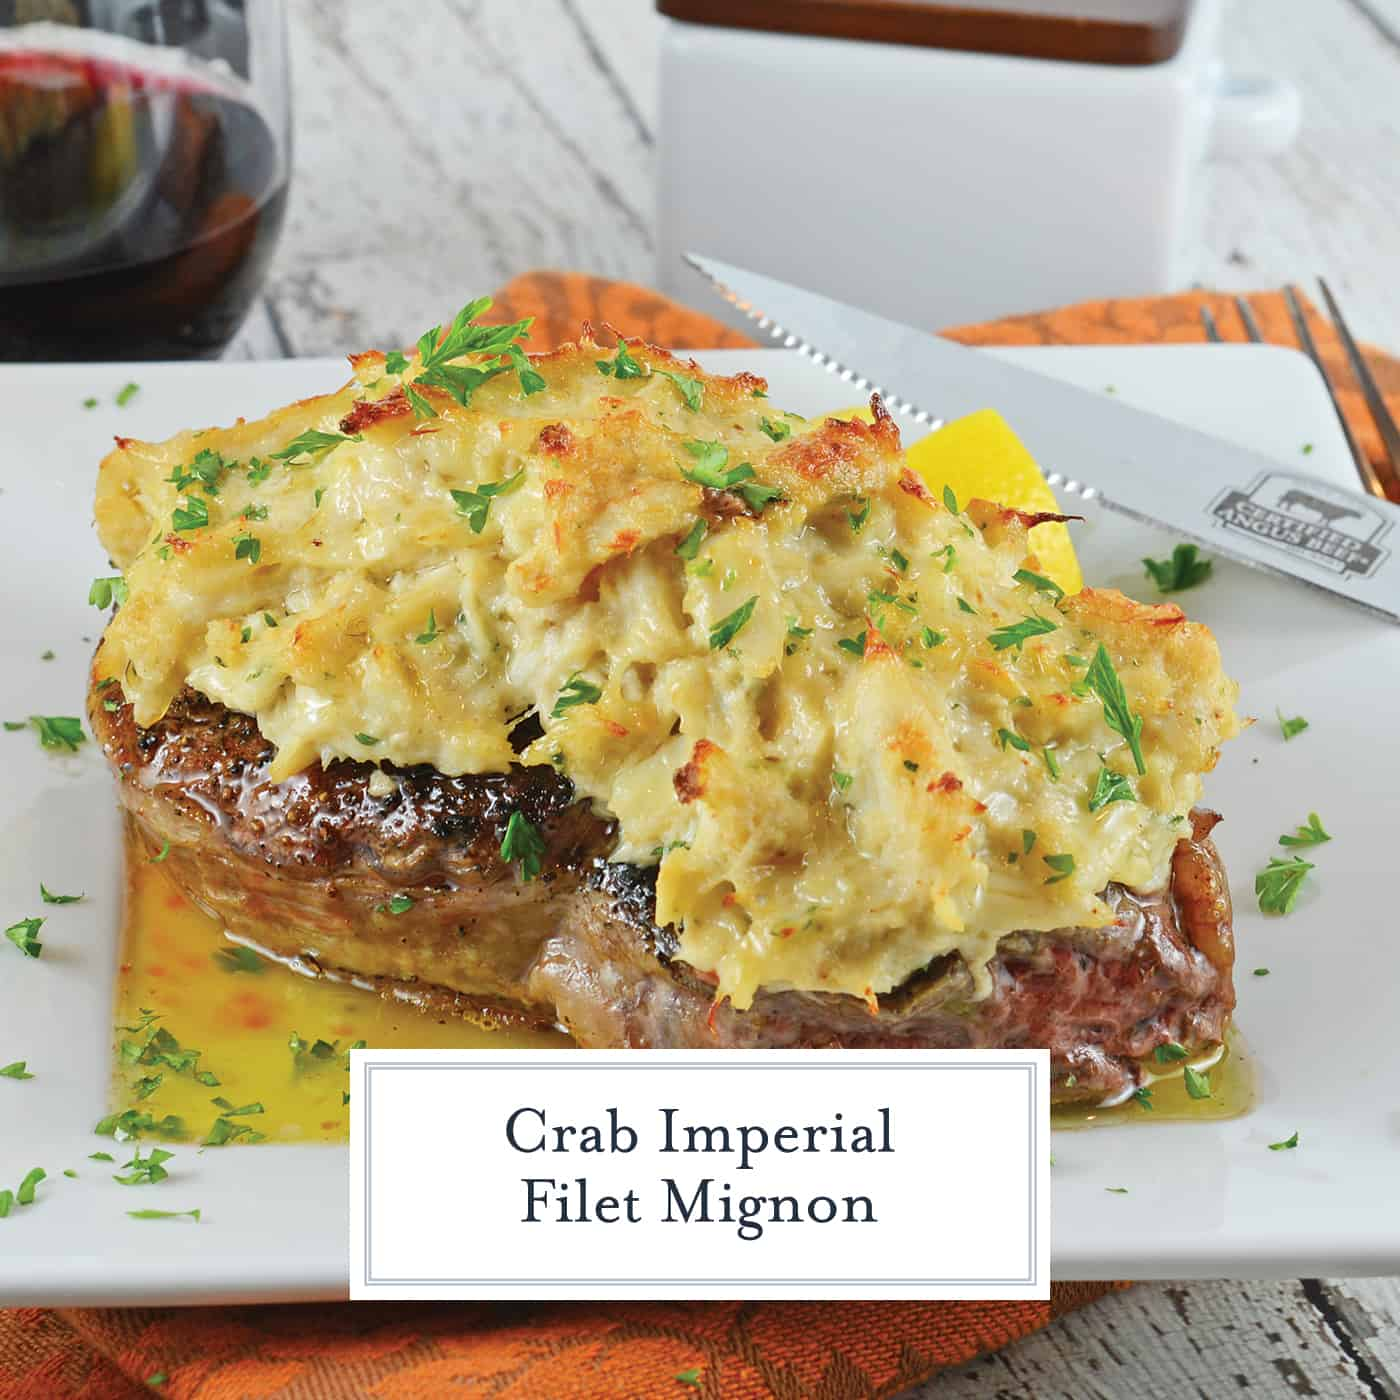 Crab Imperial Filet Mignon is an easy dish perfect for special occasions! Tender beef topped with buttery crab! A luscious crab recipe! #crabtoppingforsteak #crabimperialrecipe #filetmignon www.savoryexperiments.com